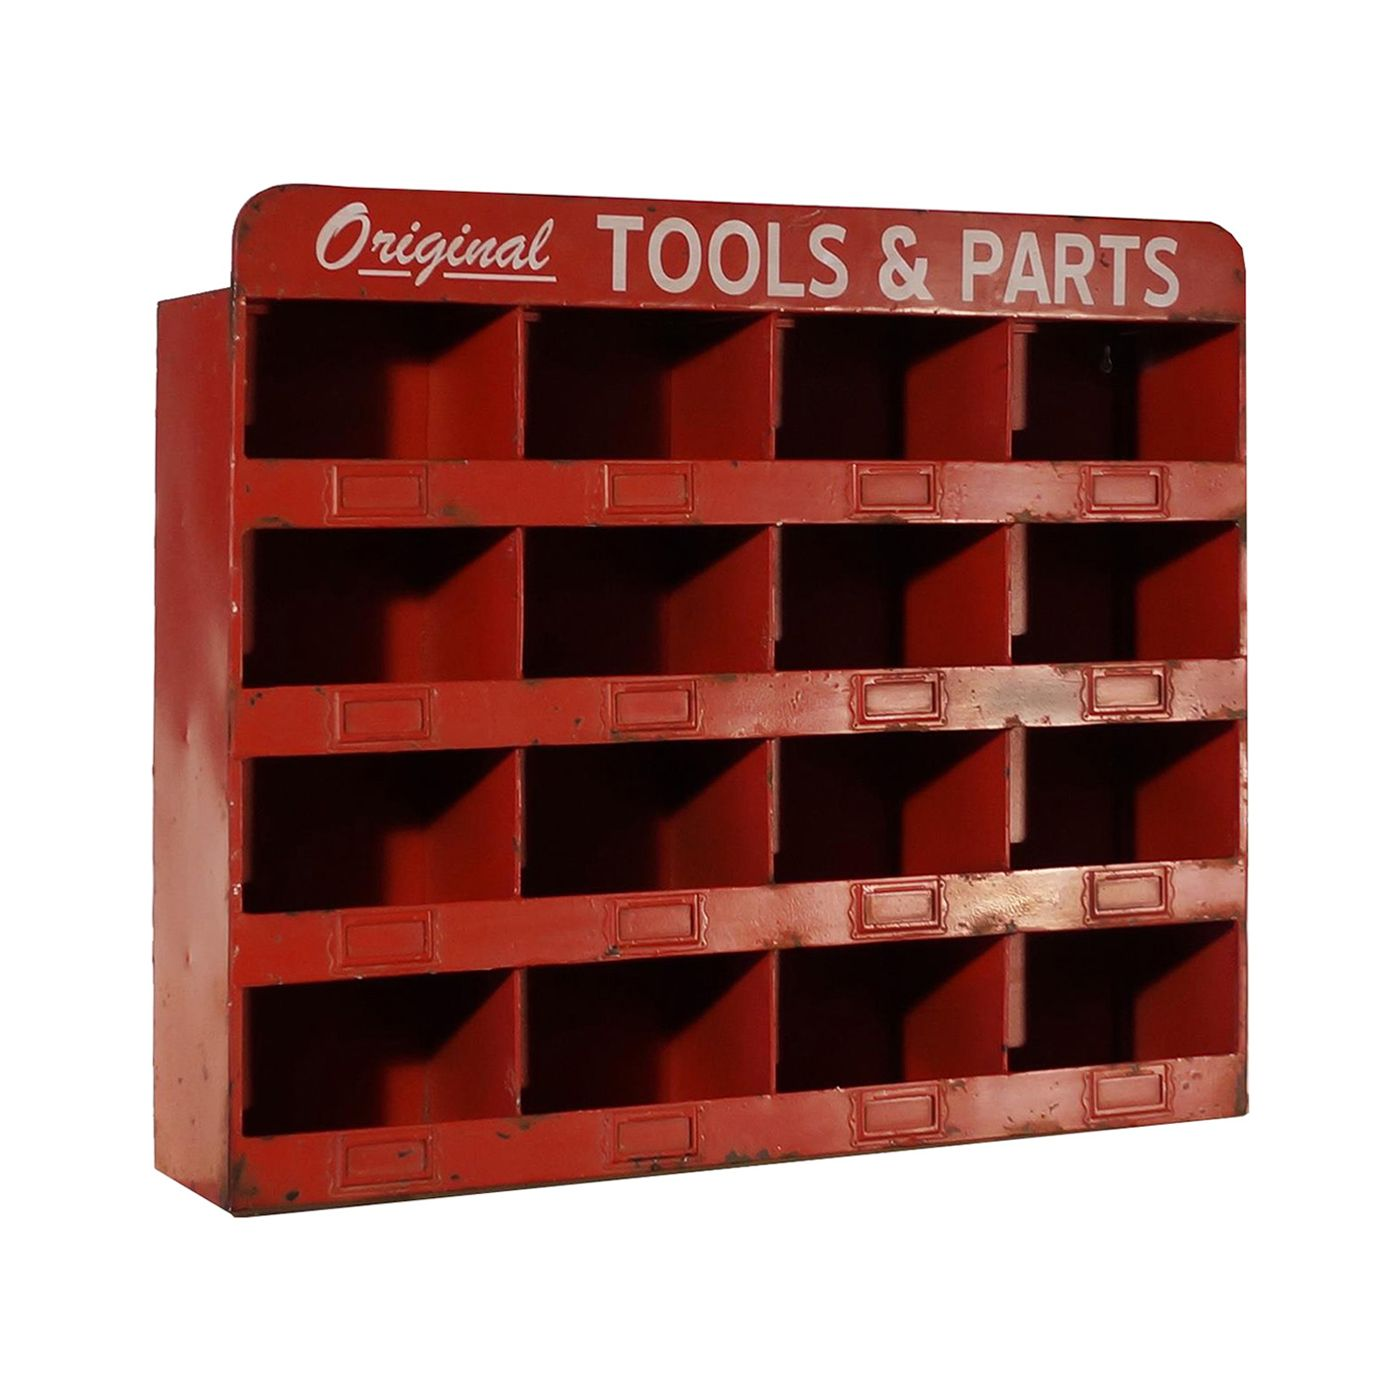 Machinist Red Cubbies Wall Shelf Decor Metal Tools Nut And Bolt Storage